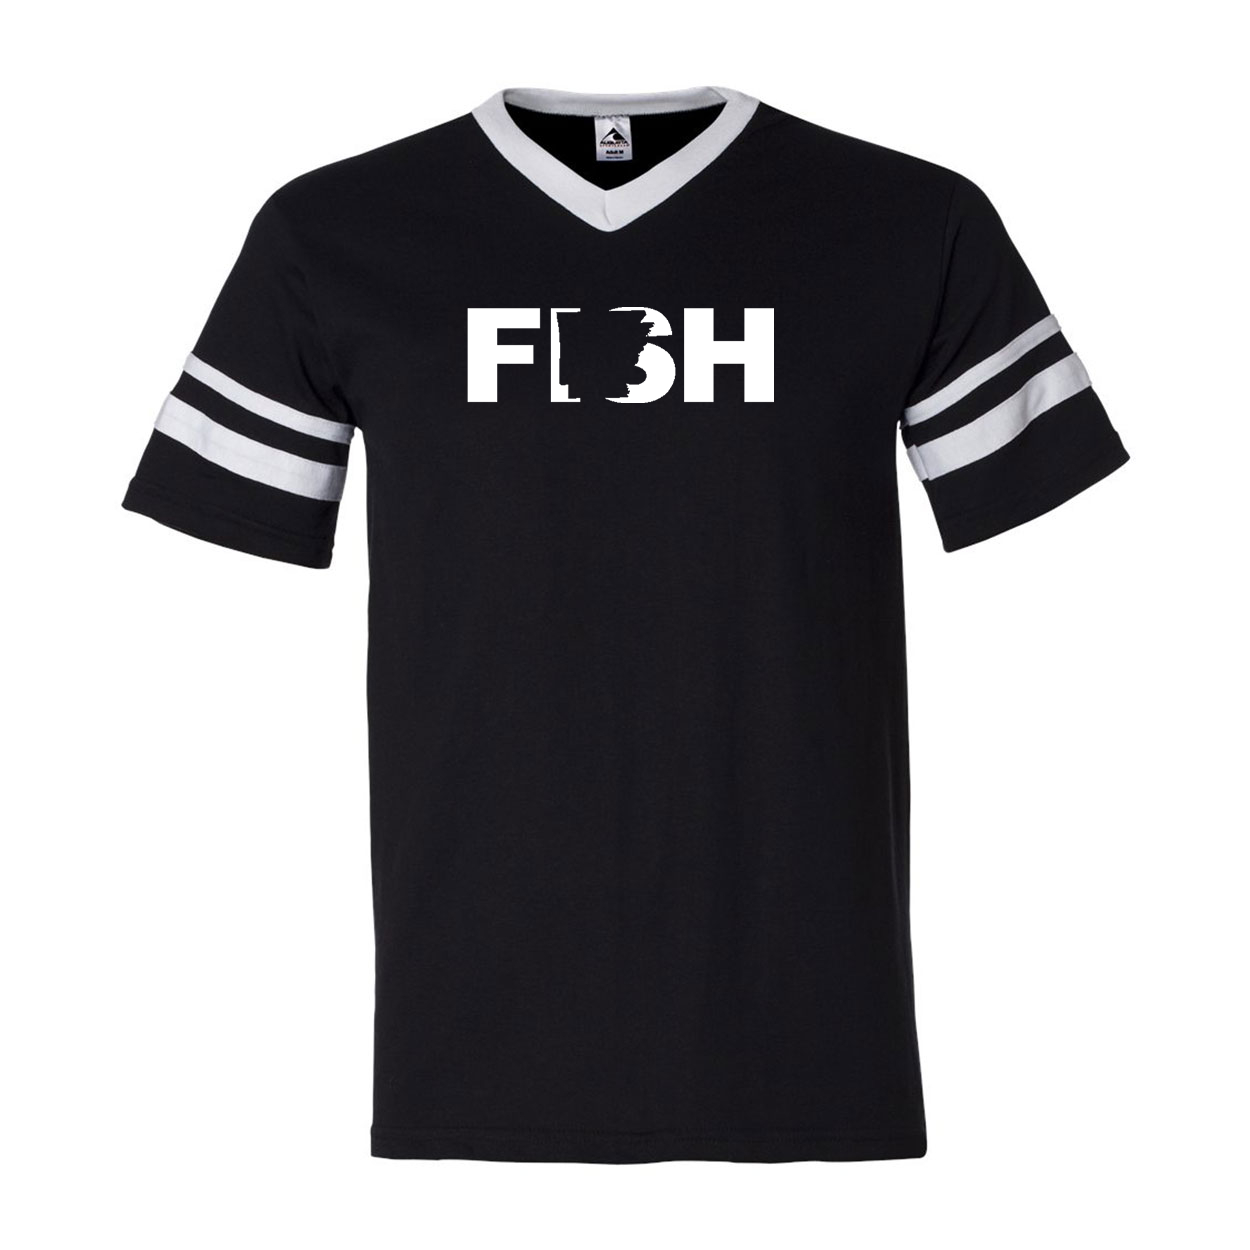 Fish Arkansas Classic Premium Striped Jersey T-Shirt Black/White (White Logo)